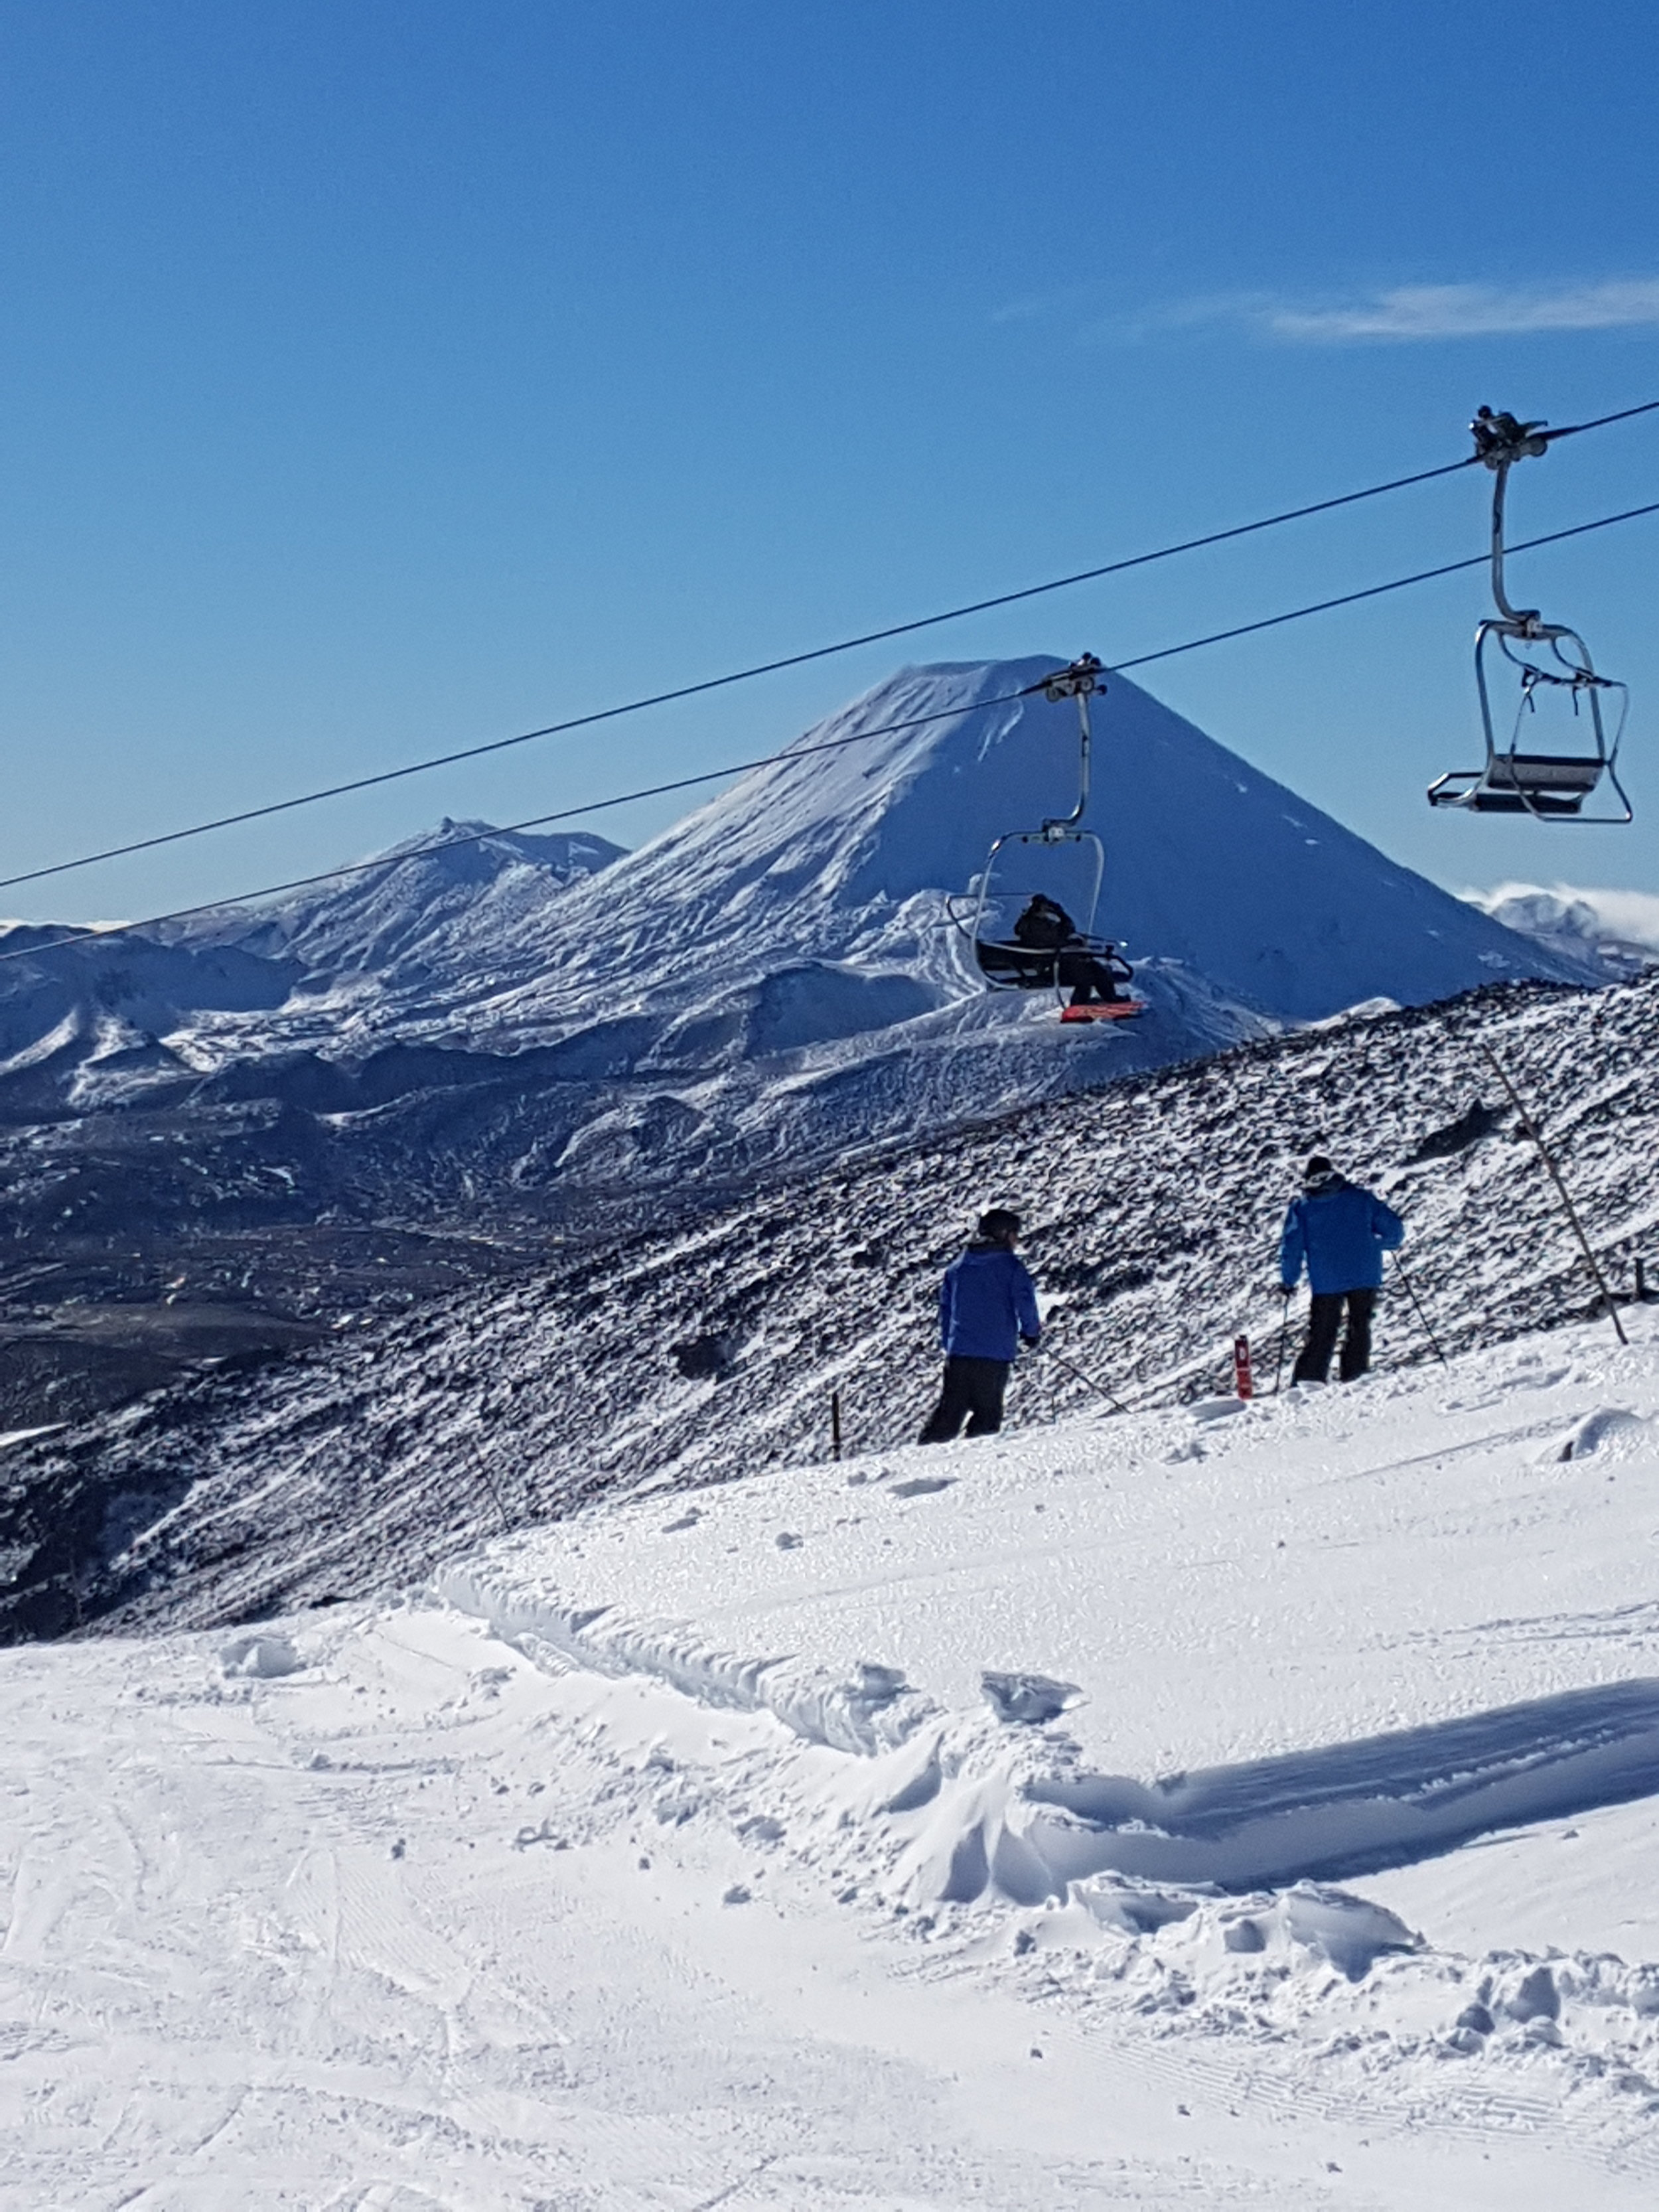 Early ski scene with chairlift.jpg